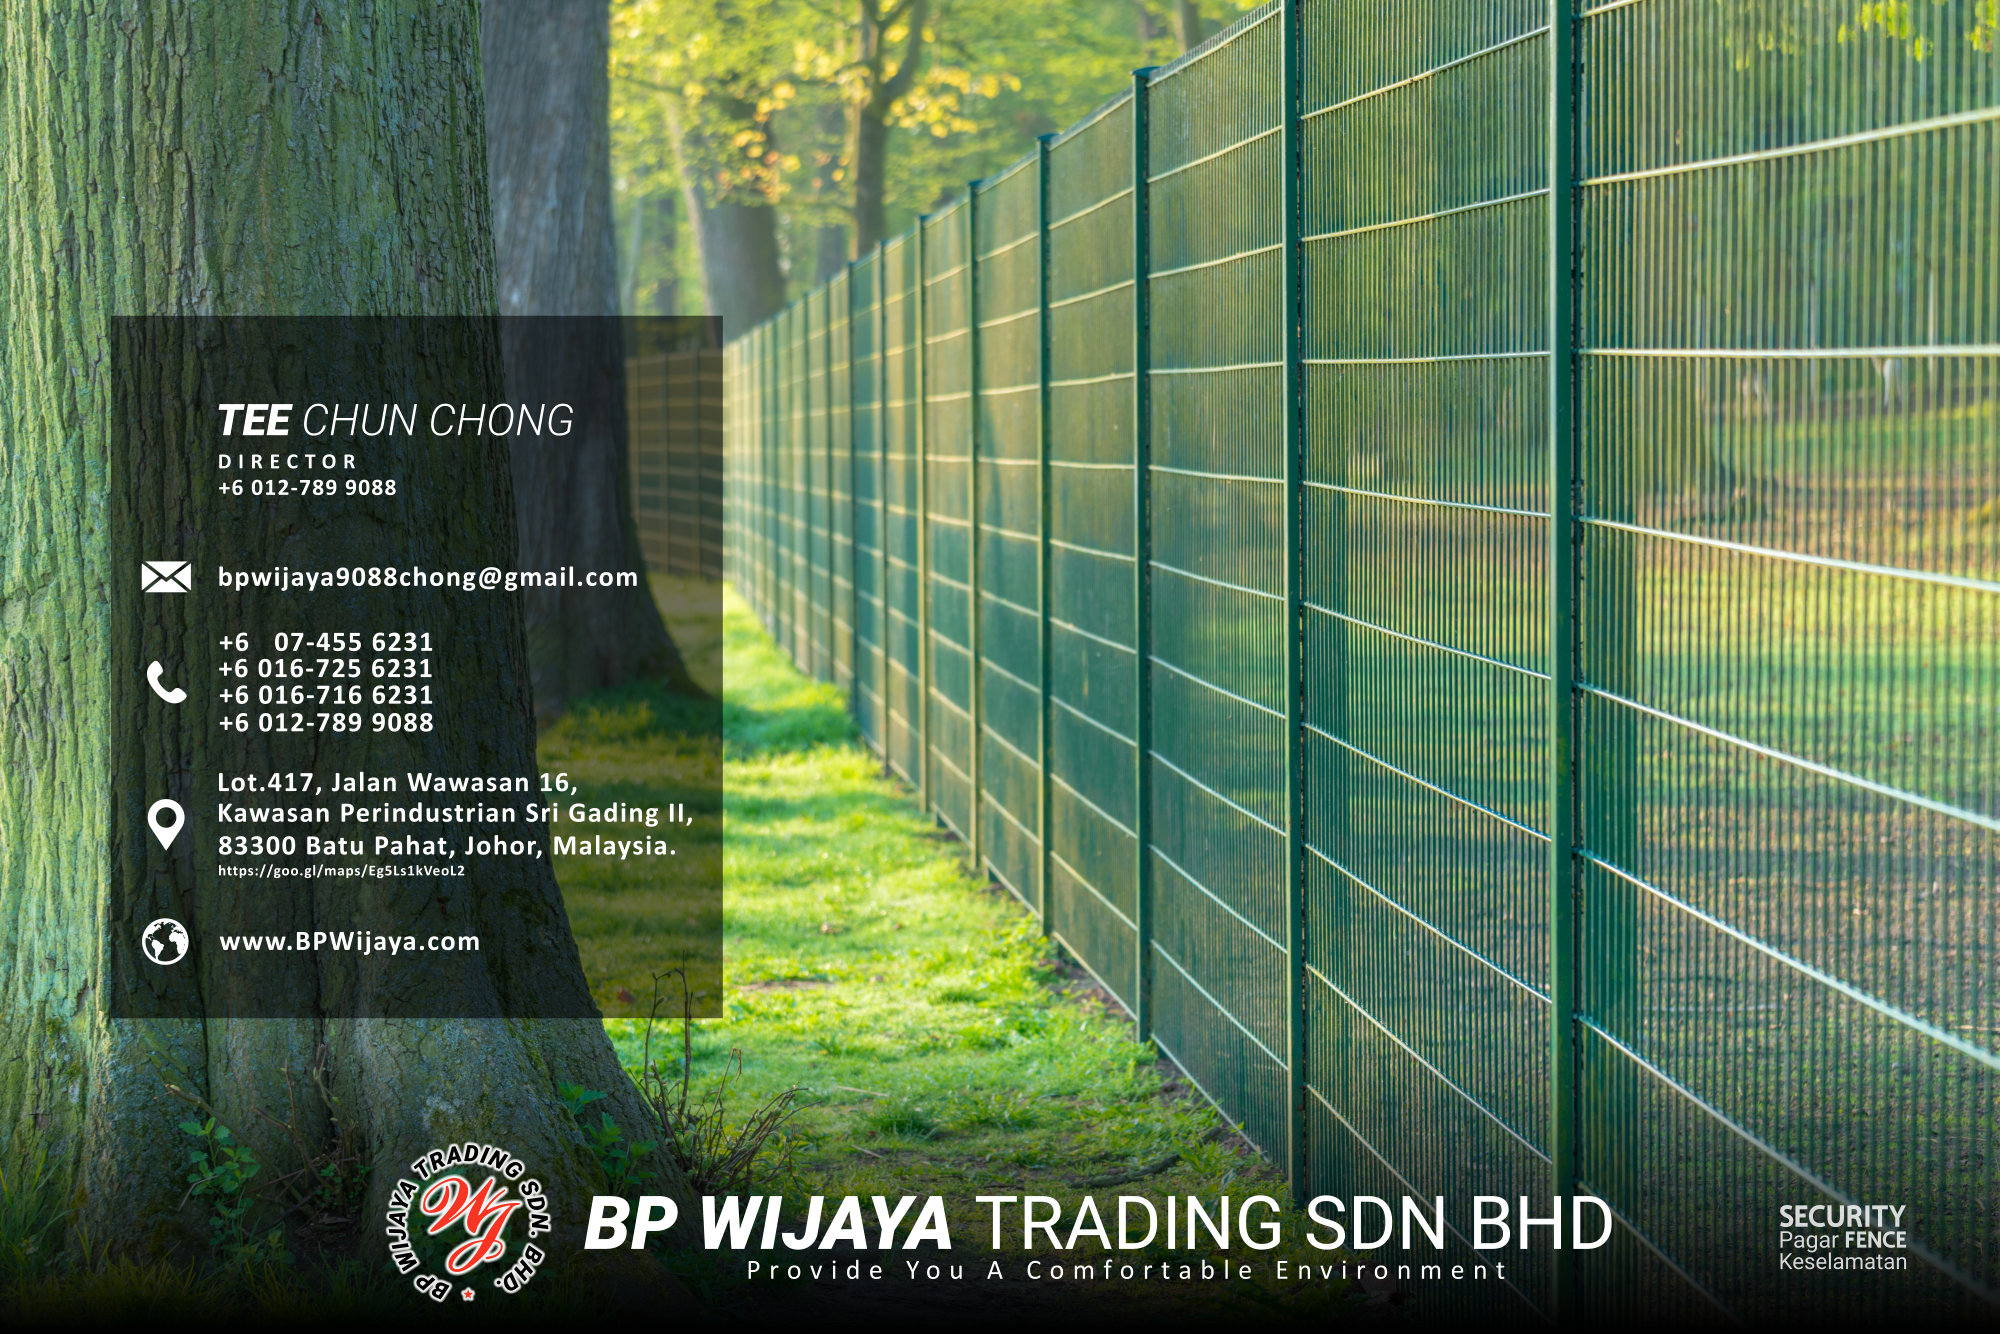 Kuala Lumpur Security Fence Supply we are manufacturer of security fence BP Wijaya Trading Sdn Bhd Safety Fence Building Materials for Housing Construction factory fence house beauty fence A03-006